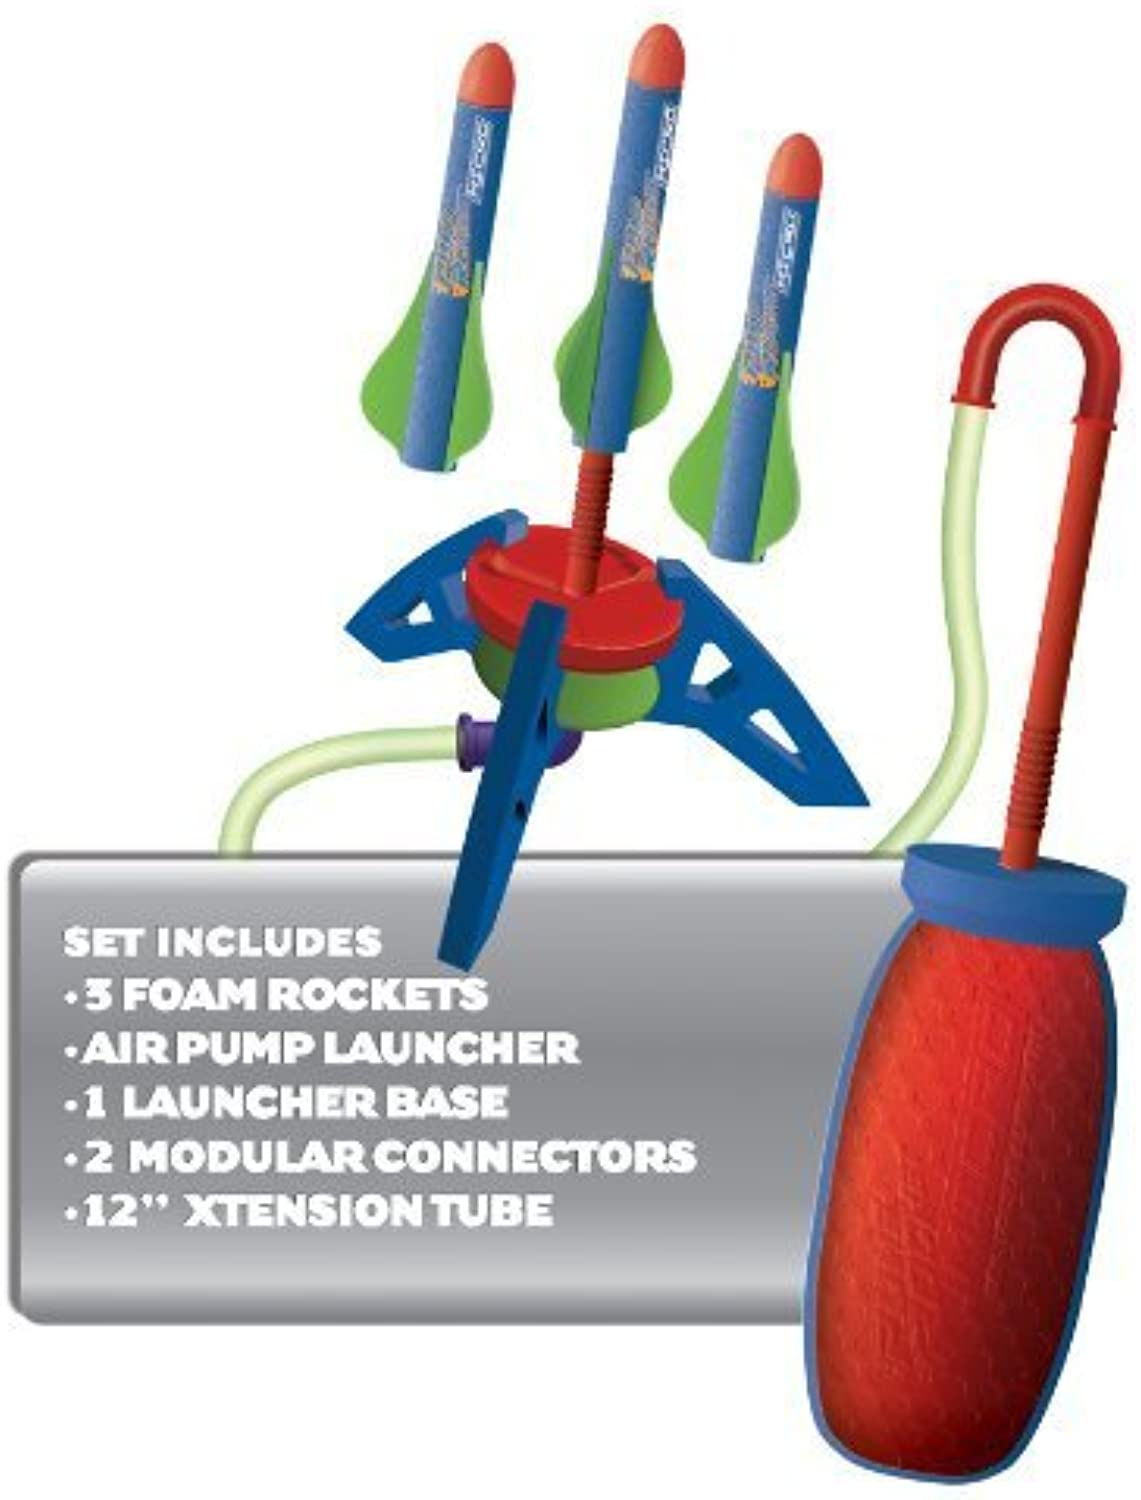 Pump Rocket Micro Slam Station Set  Complete AirPowered Launch Site, with 3 Micro Foam Rockets by GeoSpace